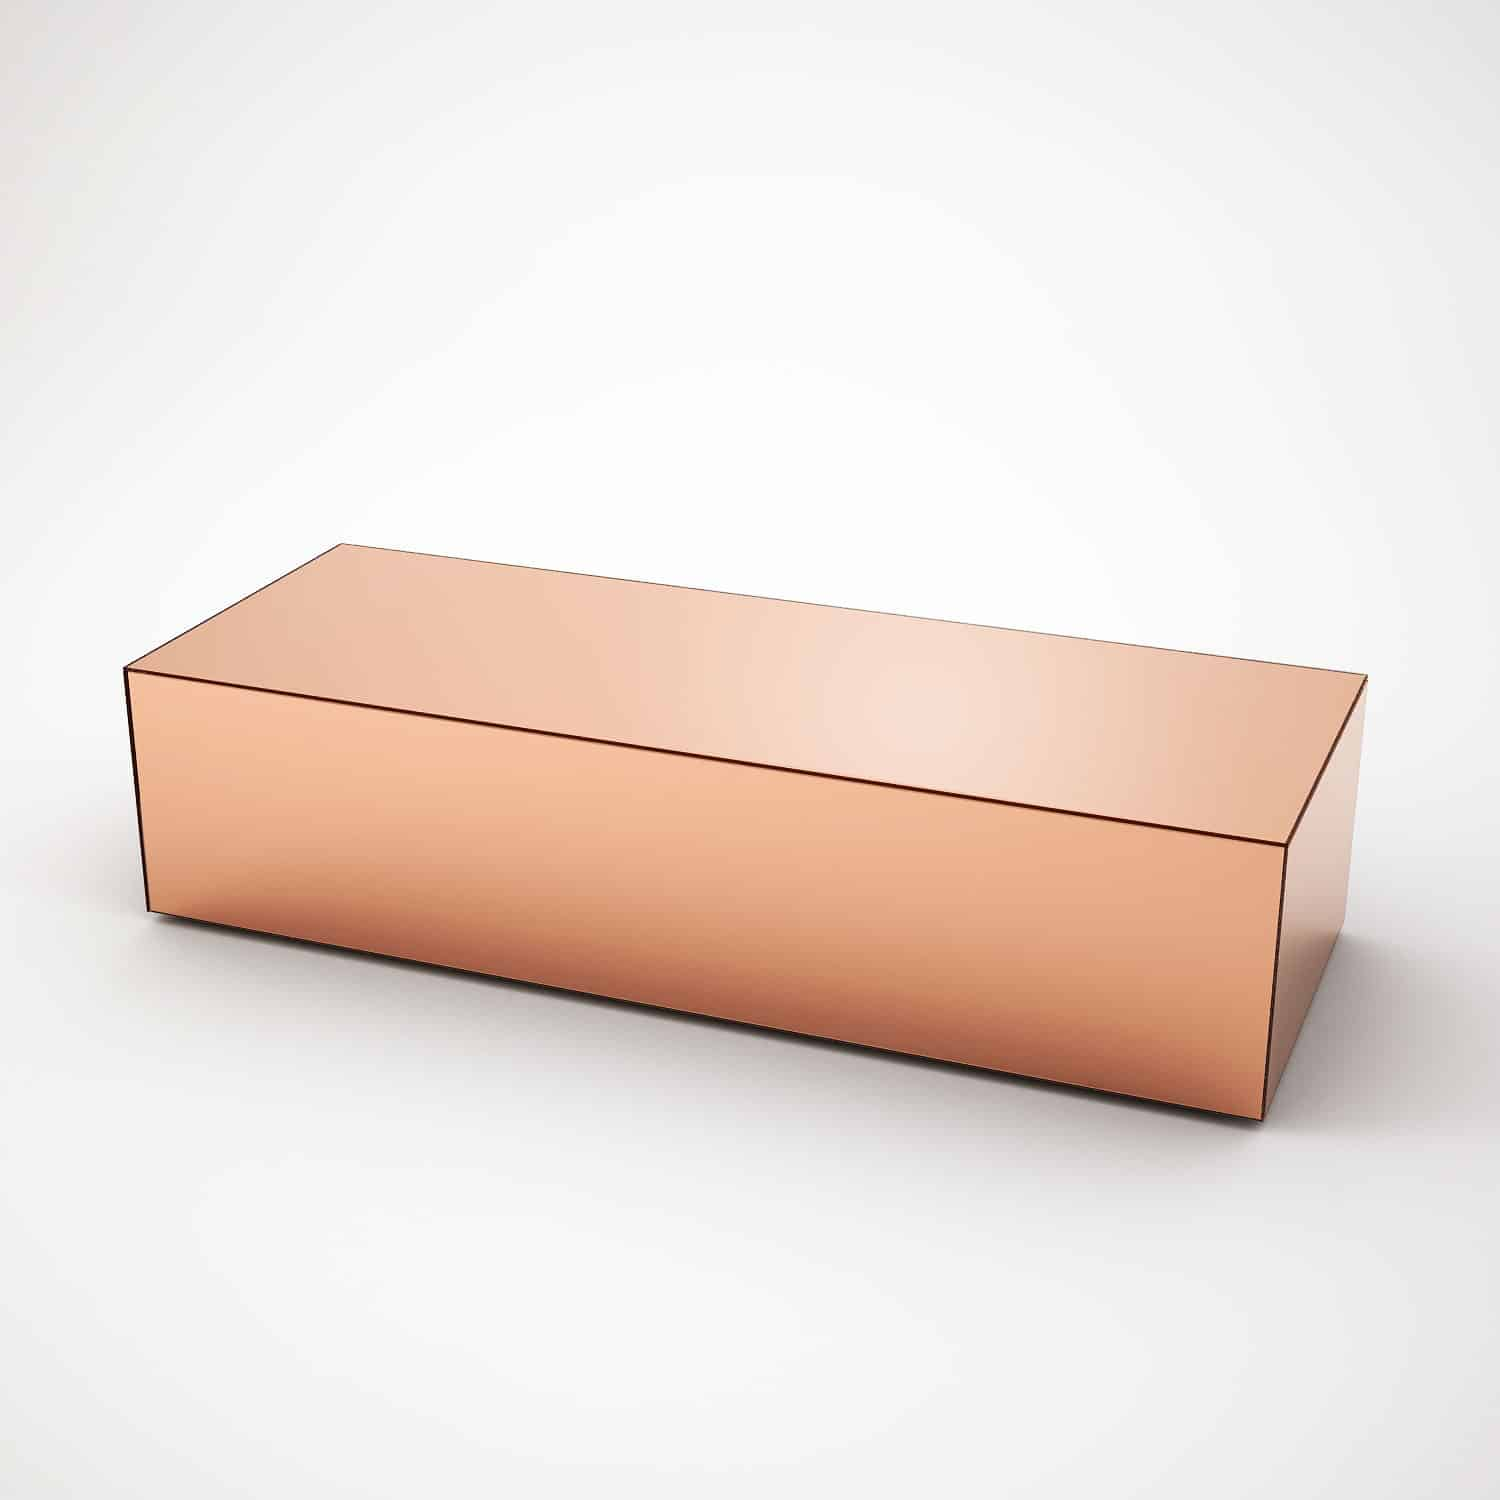 Copper Top Rectangular Coffee Table: Long Copper Mirrored Coffee Table By MirrorBox